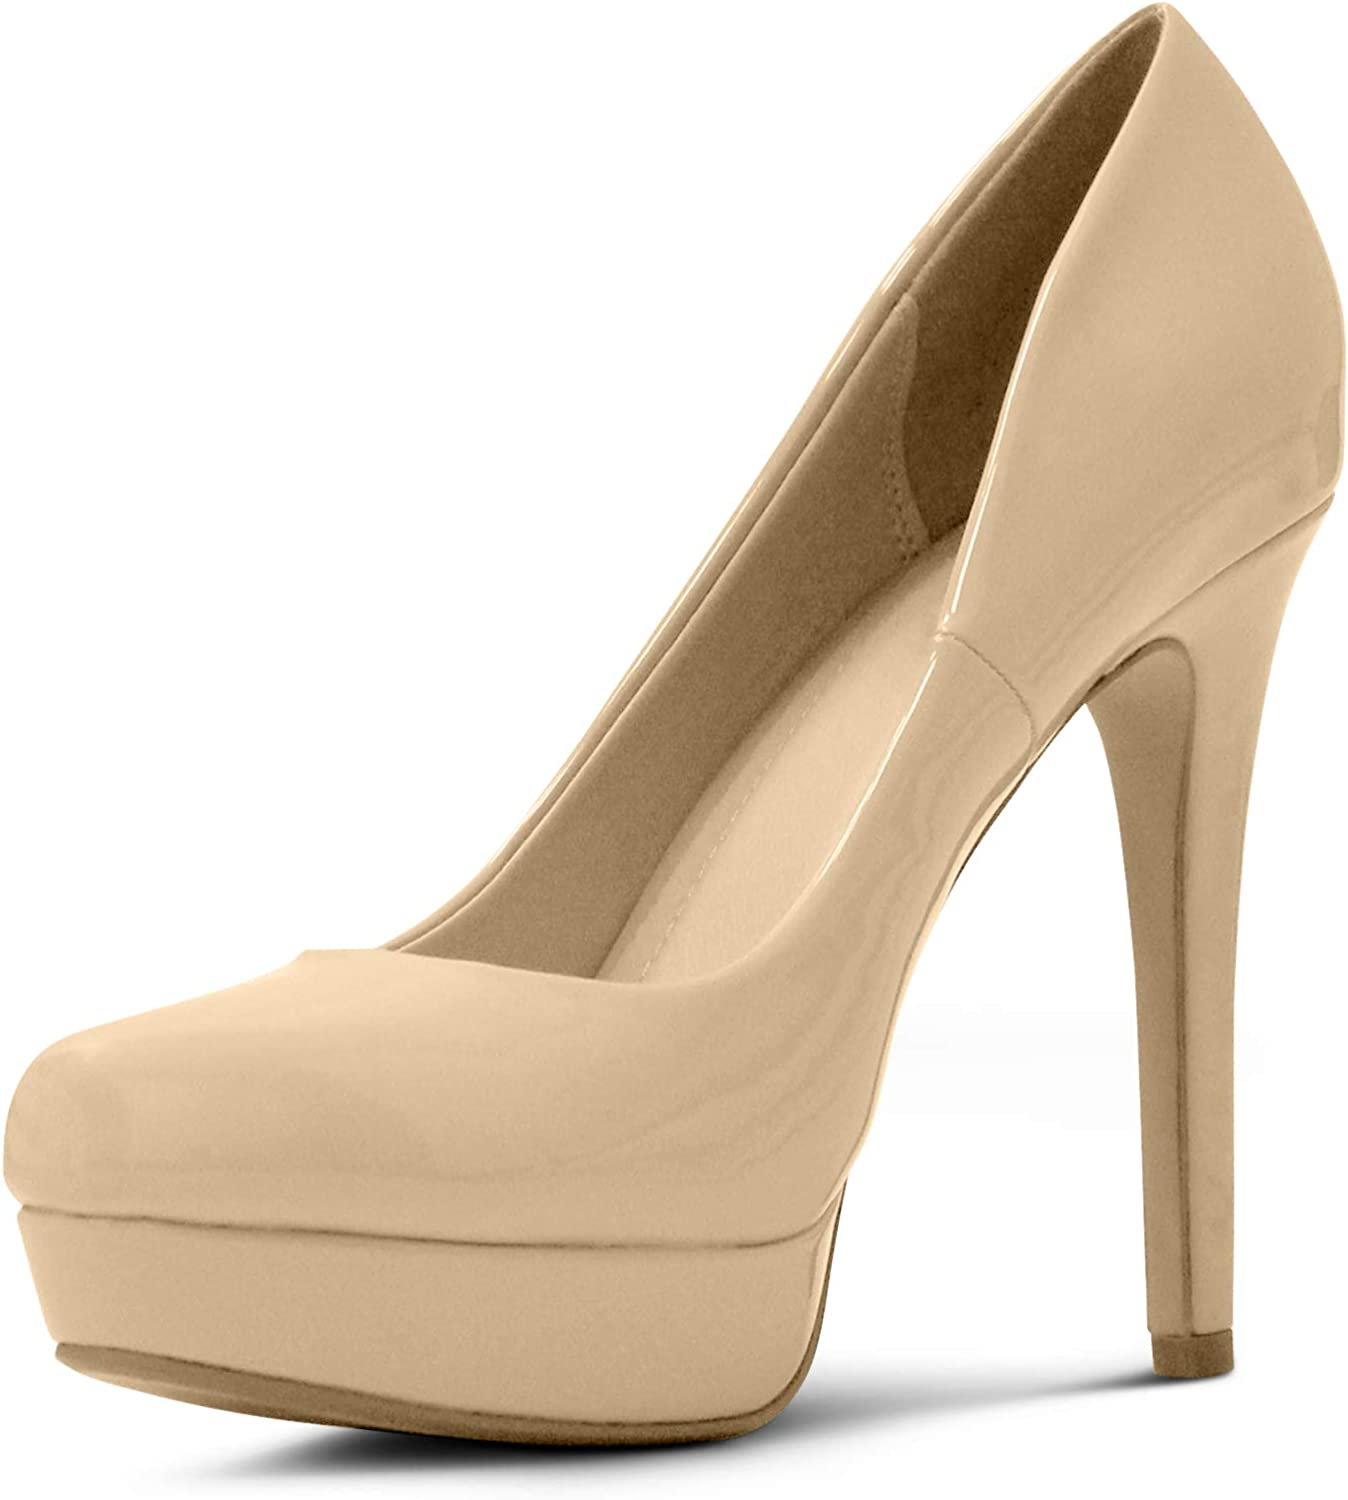 MARCOREPUBLIC Johannesburg Almond Toe High Heels Platform shoes Stiletto Dress Pumps - (Dark Beige Patent) - 11